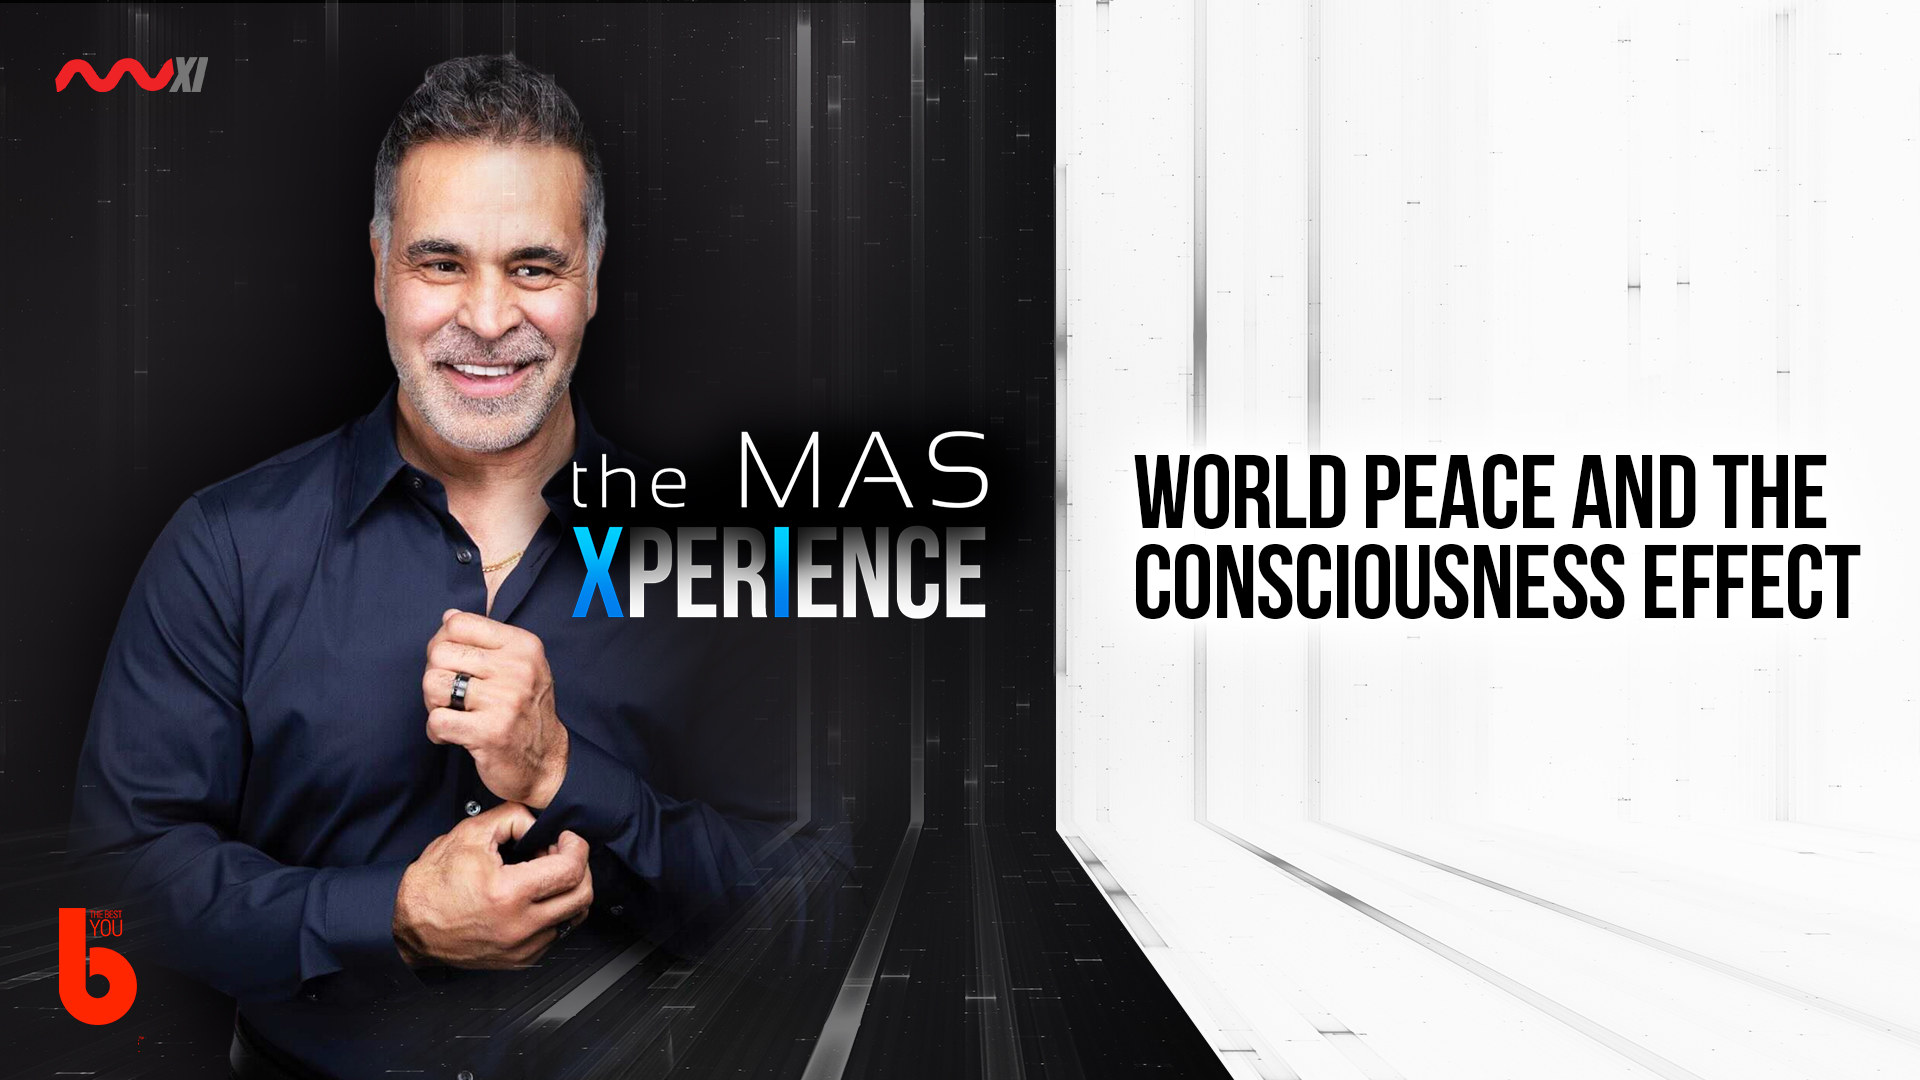 World Peace and the Consciousness Effect